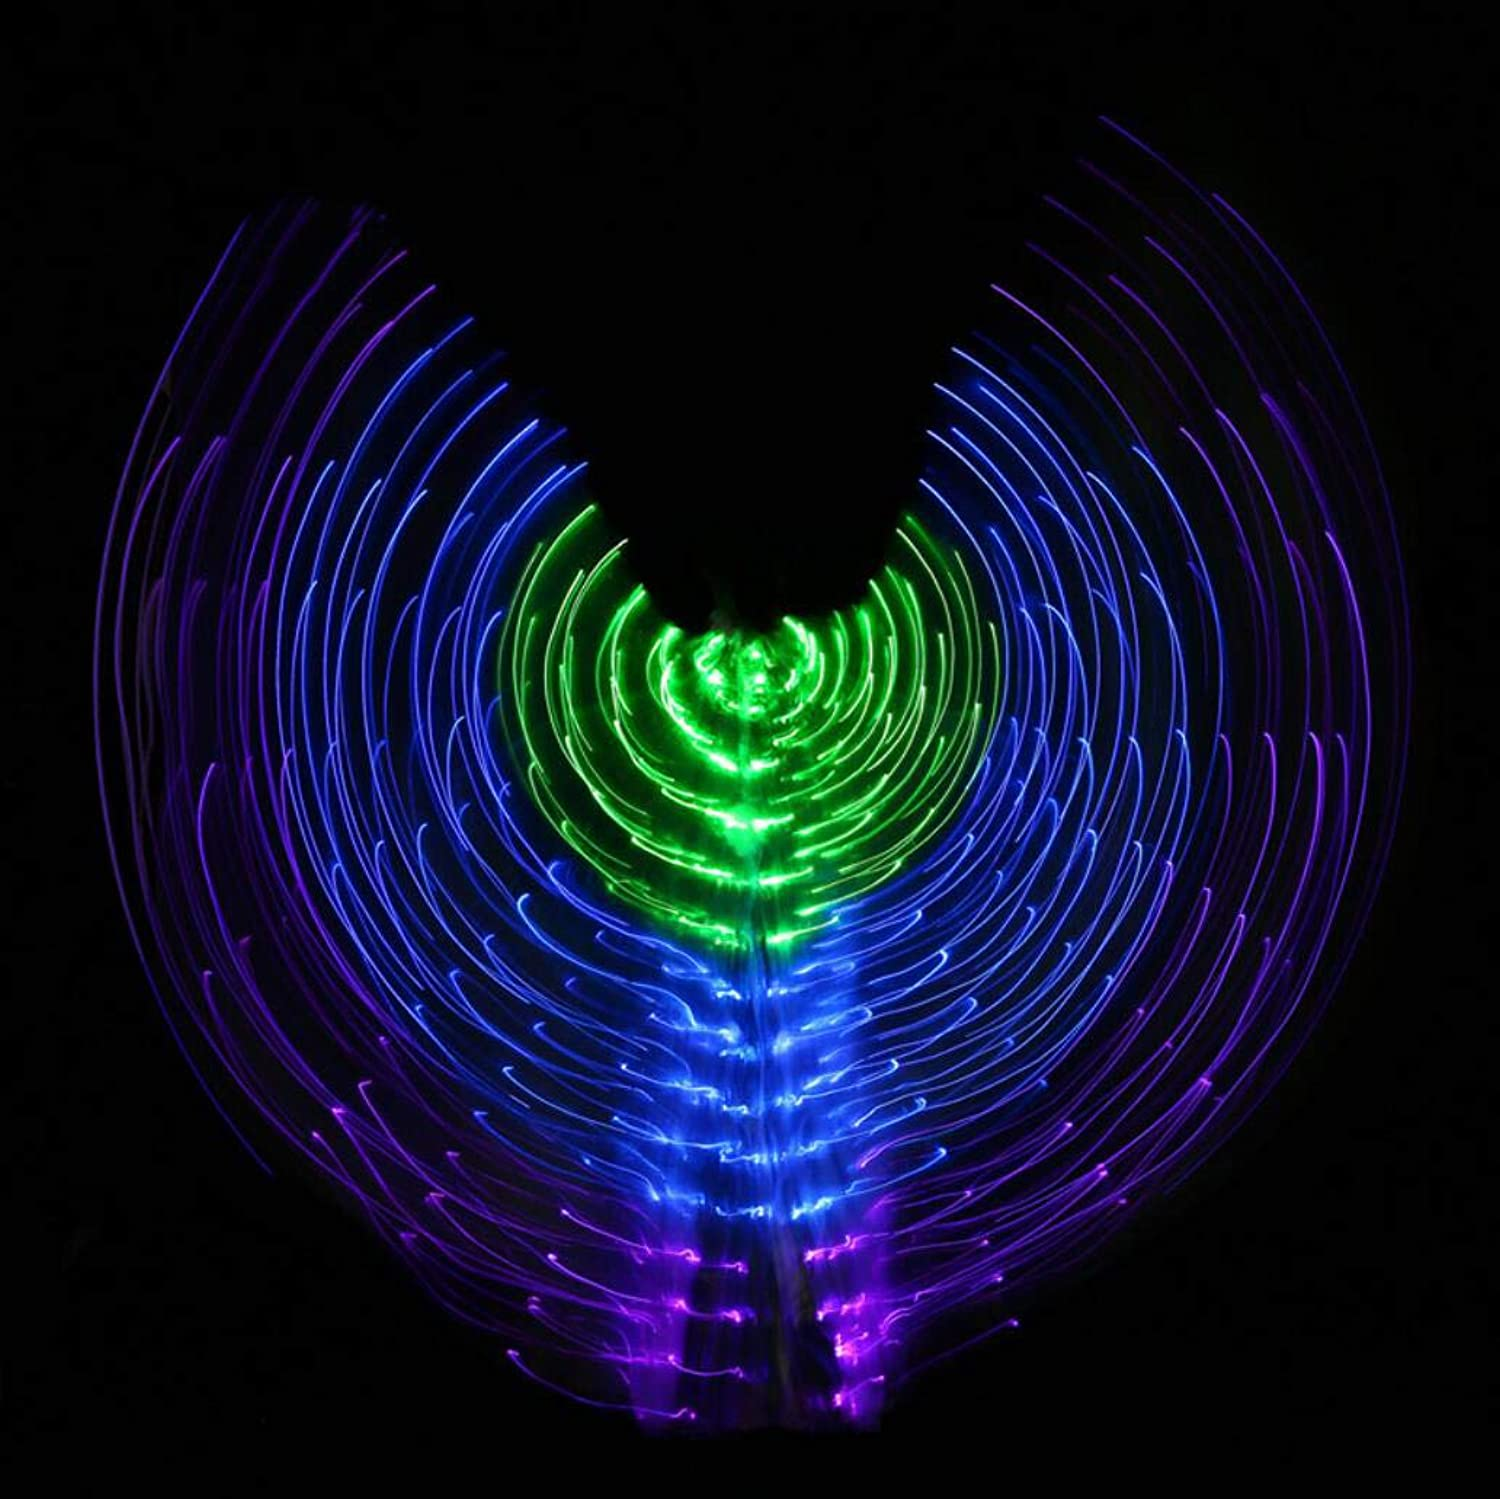 Dance Fairy Opening Belly Dance LED Isis Wings with Sticks RodsWings 300 LED Luminous Light Up Stage Performance Props Passed CE, FCC Certification